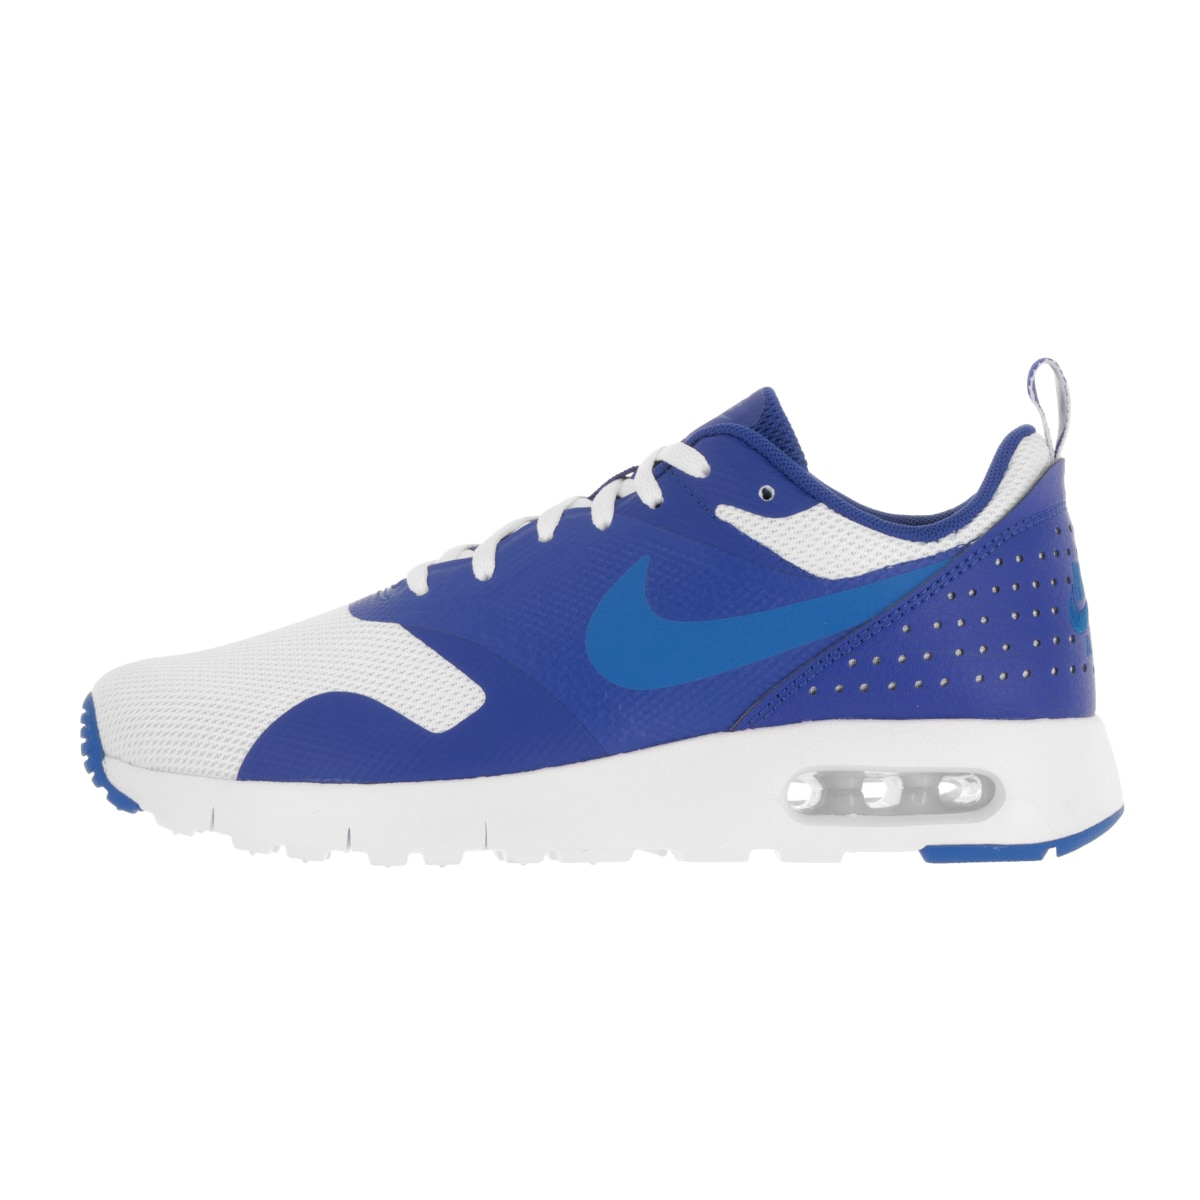 watch 887f8 63b5c Shop Nike Kids  Air Max Tavas (GS) White and Blue Plastic Running Shoes -  Free Shipping Today - Overstock - 13394257